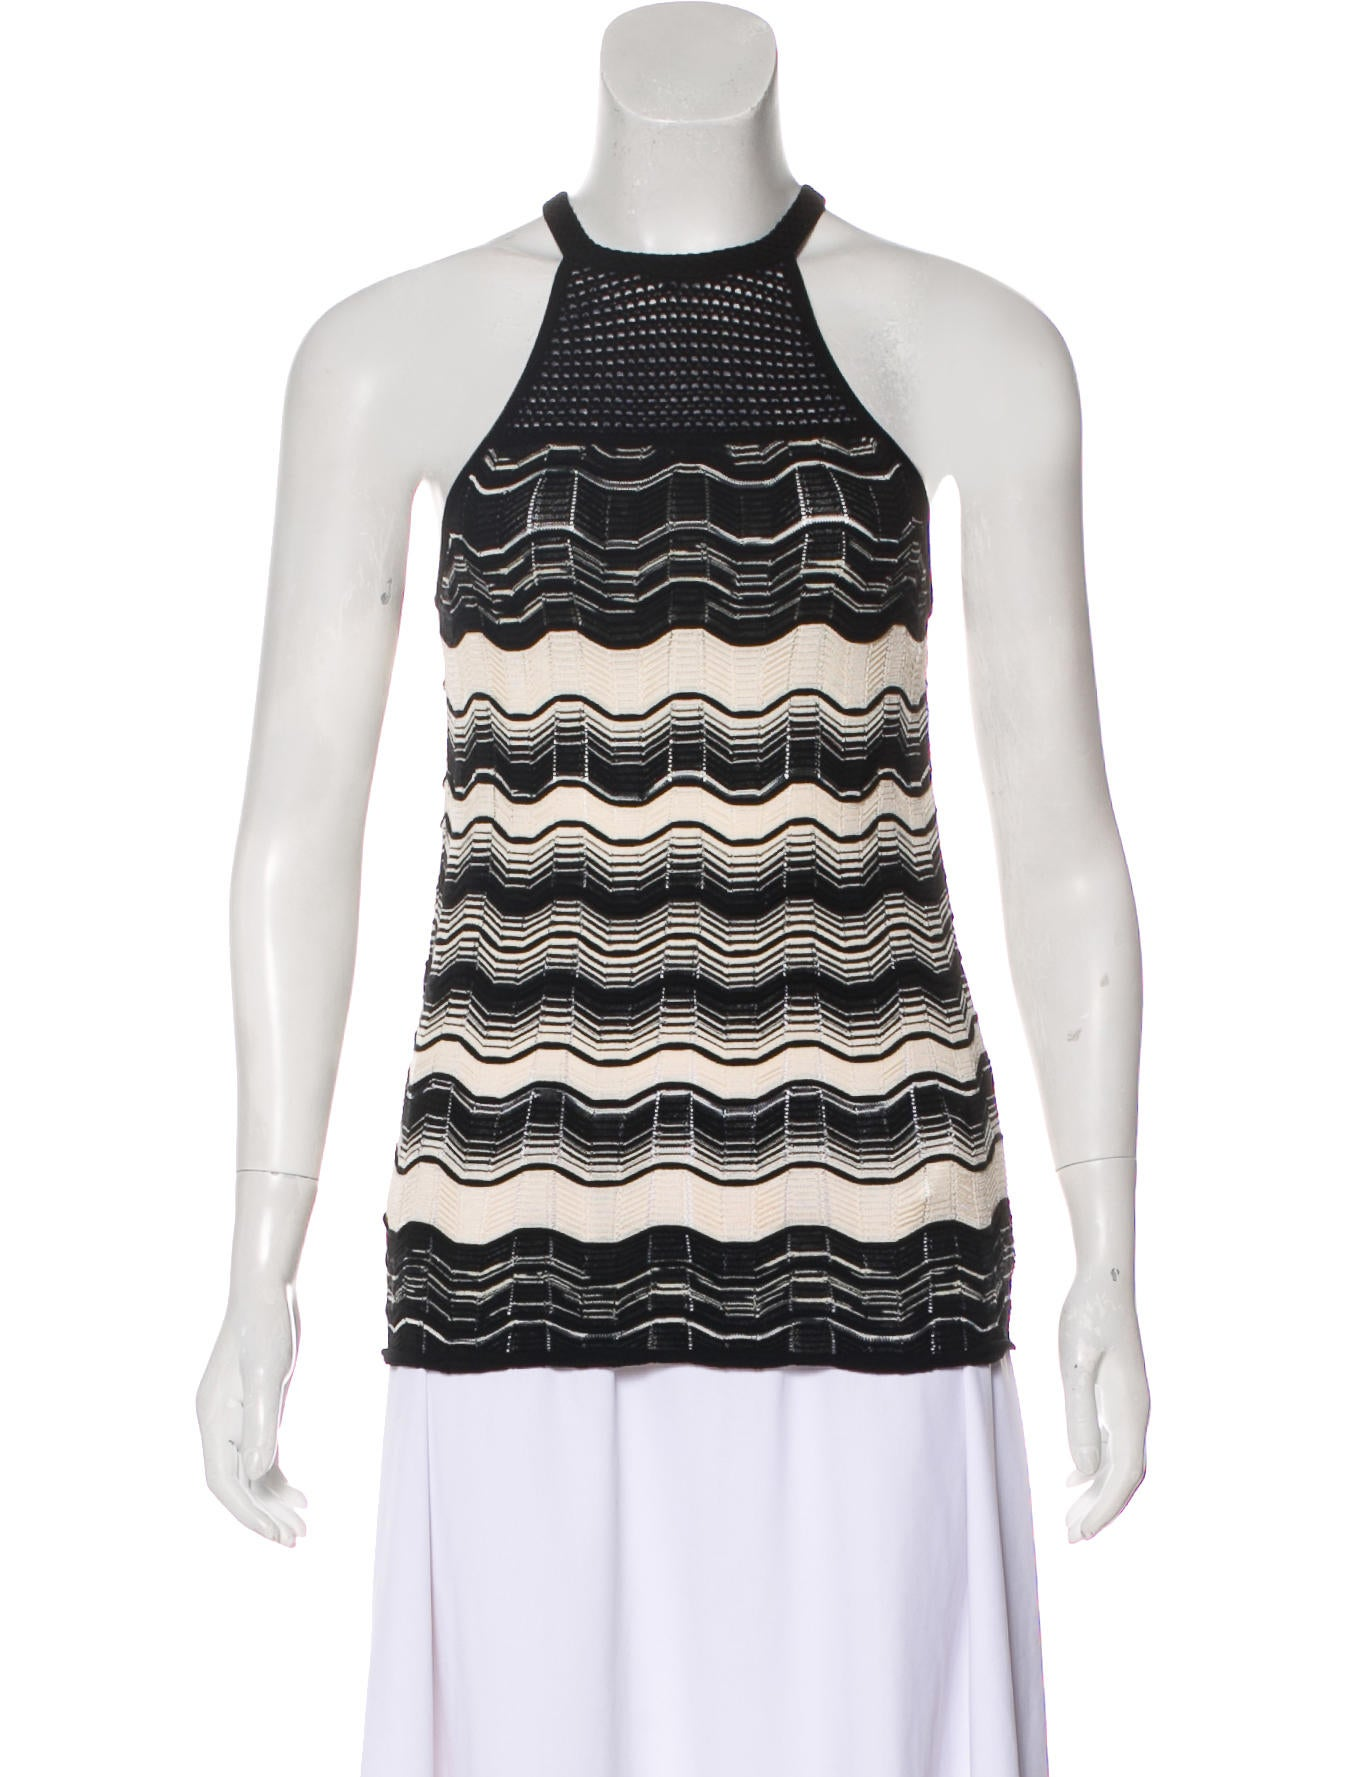 M Missoni Knit Halter Top Clothing Wm449114 The Realreal